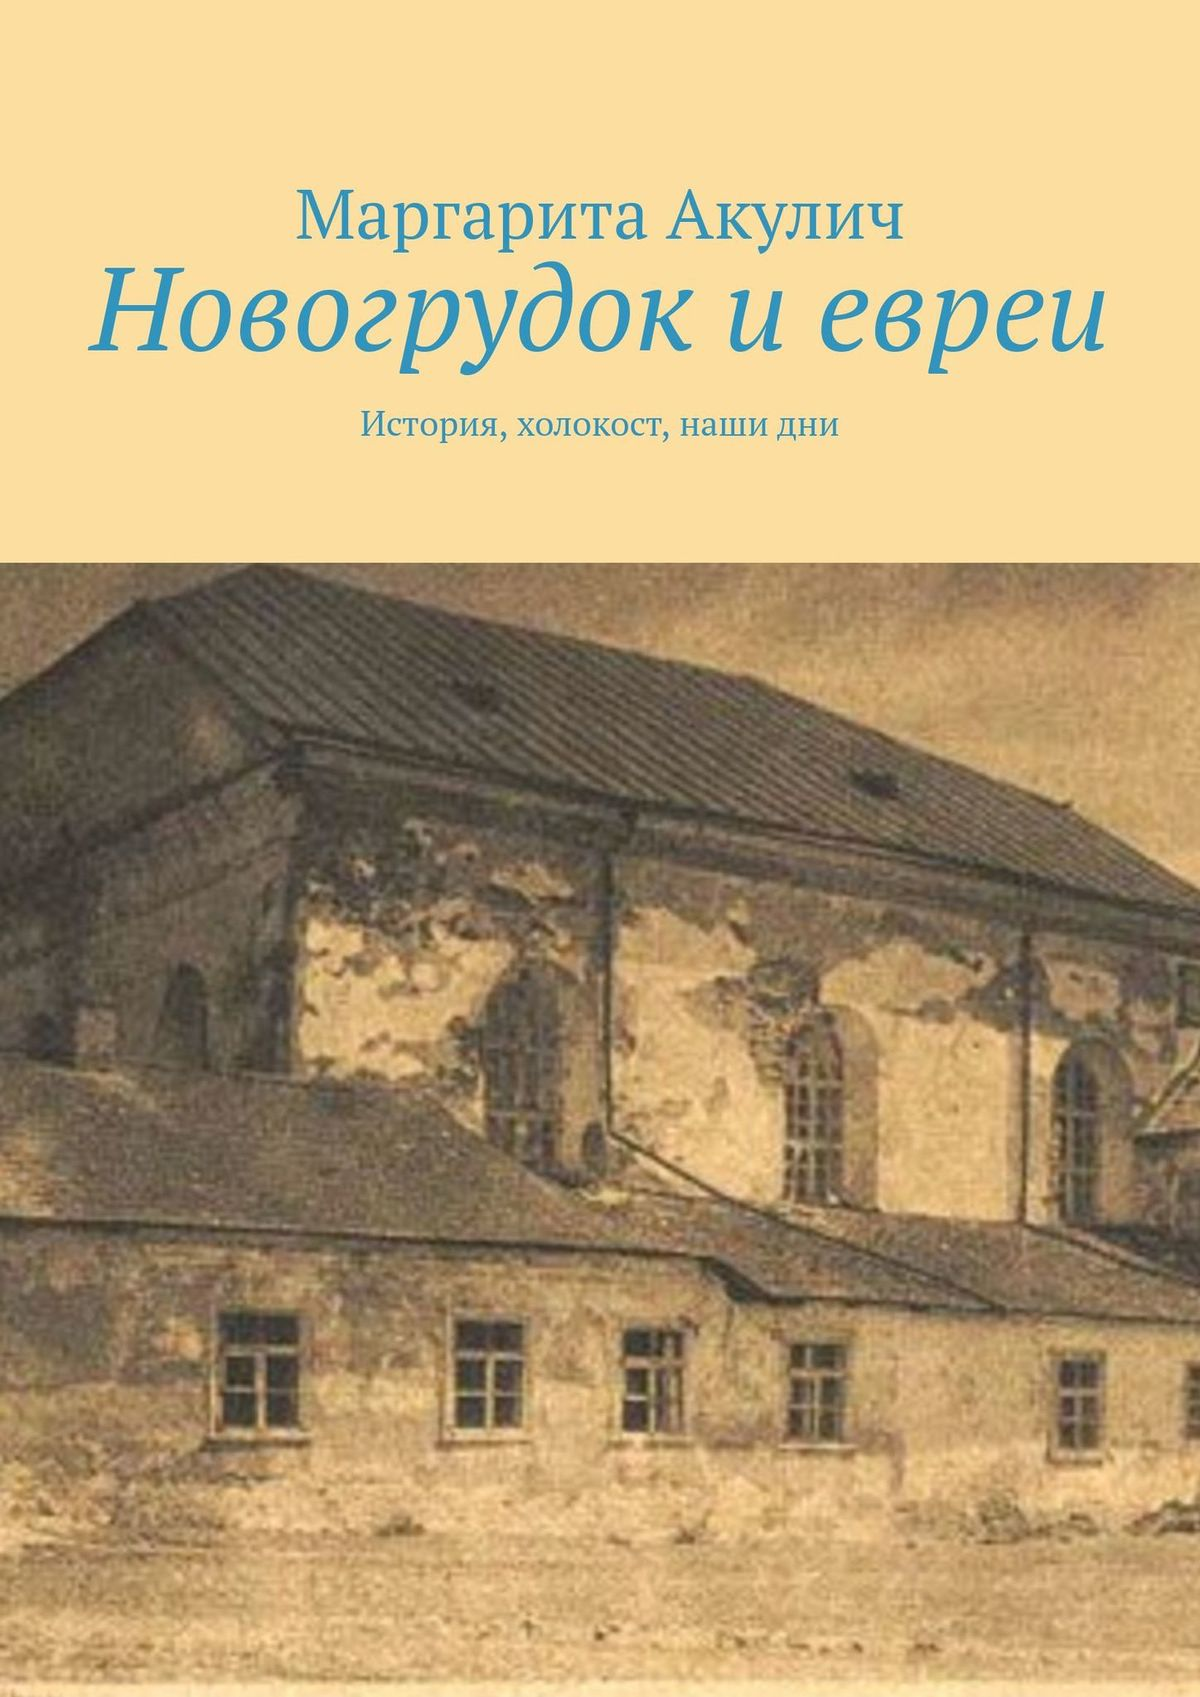 Маргарита Акулич Новогрудок и евреи. История, холокост, наши дни эжен сю the gold sickle or hena the virgin of the isle of sen a tale of druid gaul